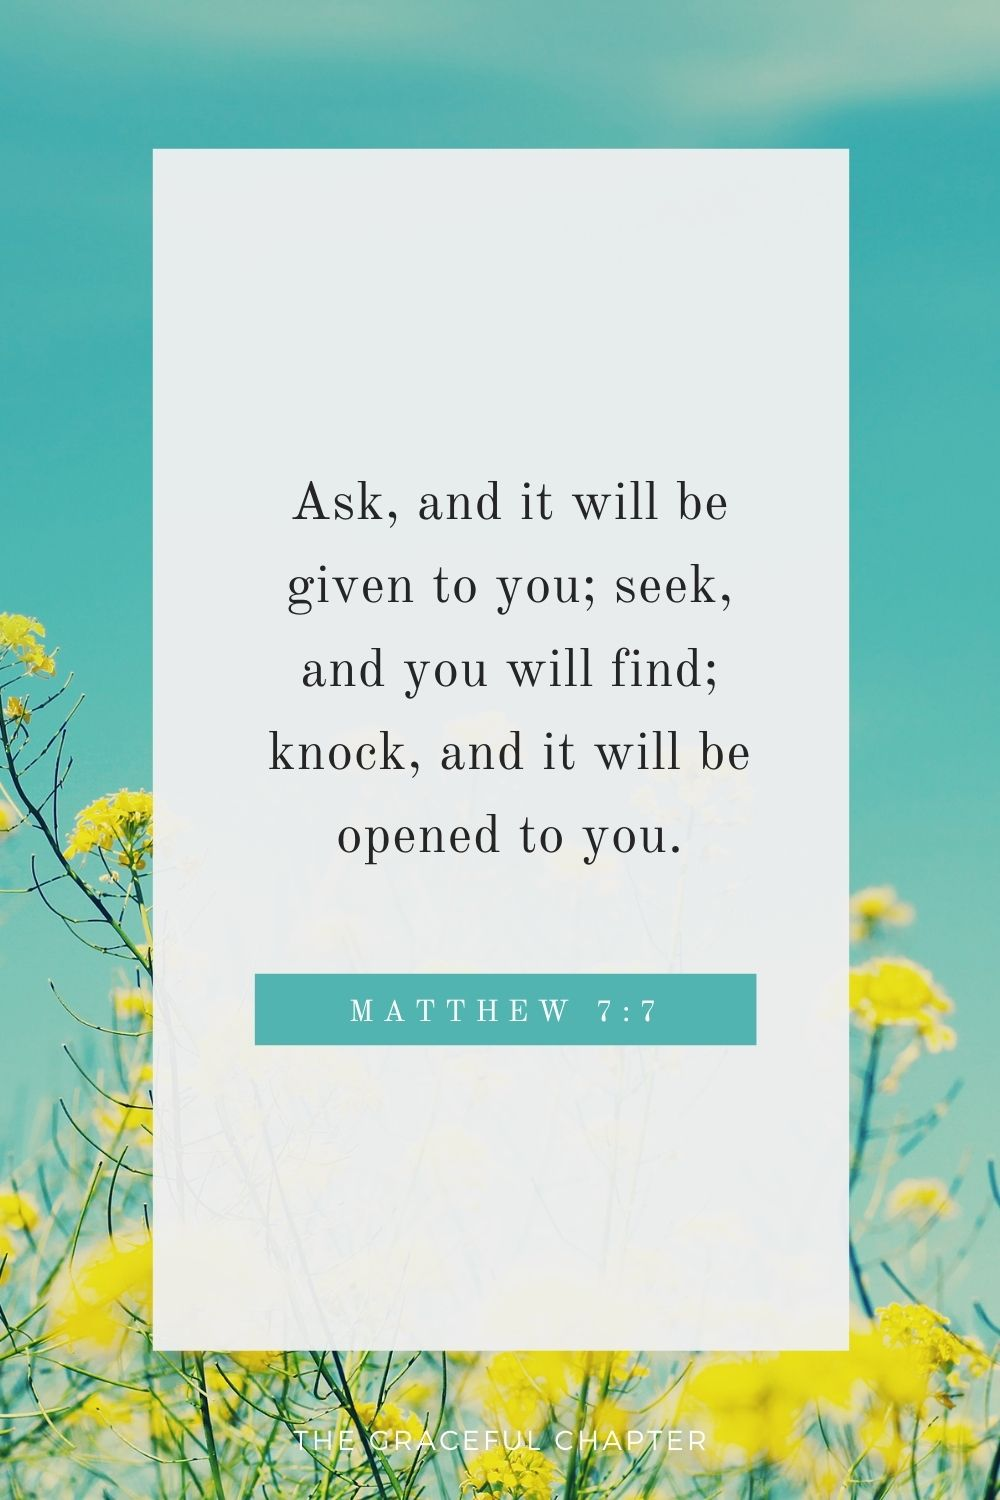 Ask, and it will be given to you; seek, and you will find; knock, and it will be opened to you. Matthew 7:7